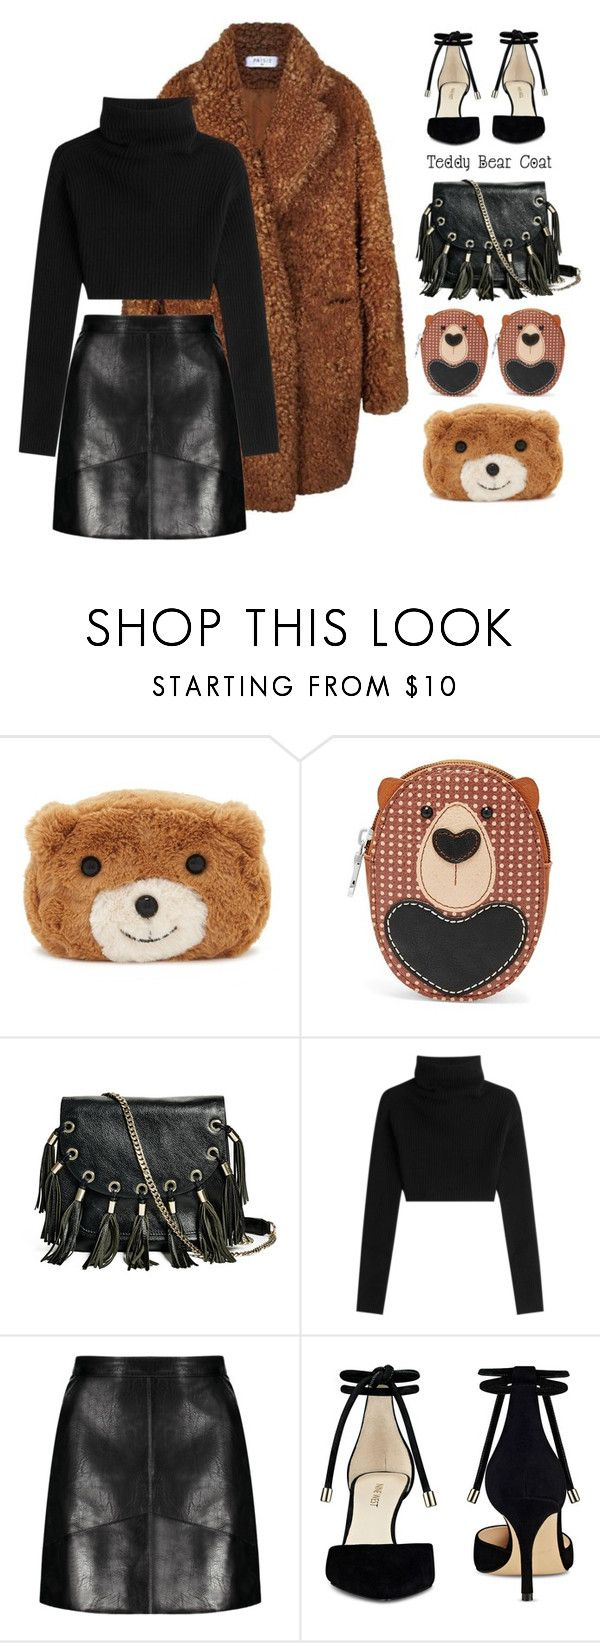 """Teddy bear coats"" by miee0105 ❤ liked on Polyvore featuring Forever 21, Relic, GUESS by Marciano, Valentino and Nine West"